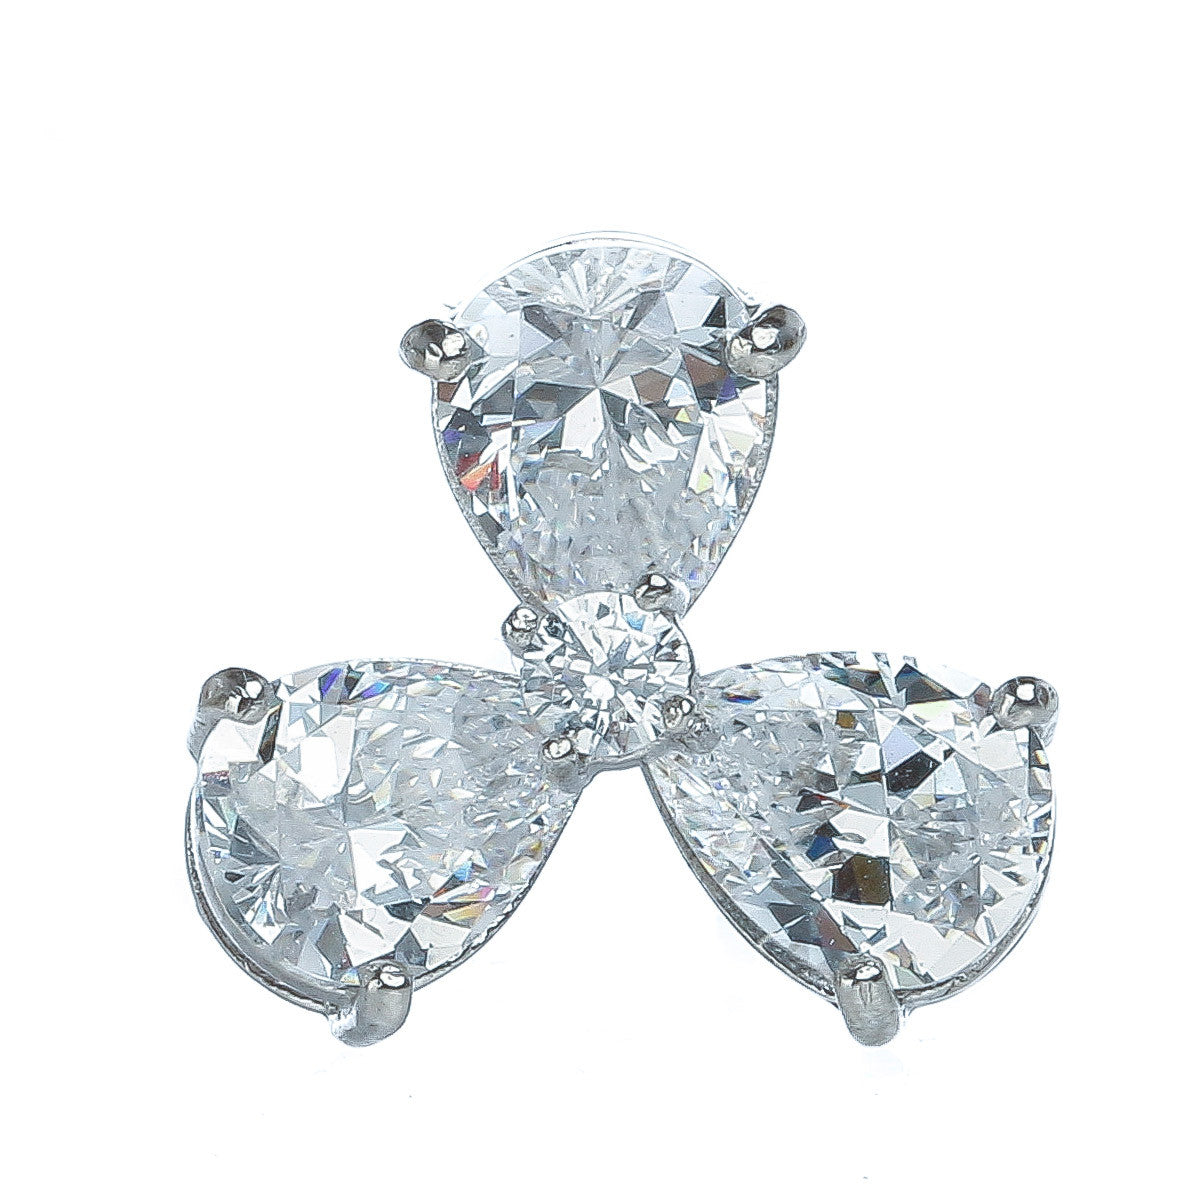 Clover Sparkle Studs - The Firestone Collection - Fashion Jewelry & Accessories